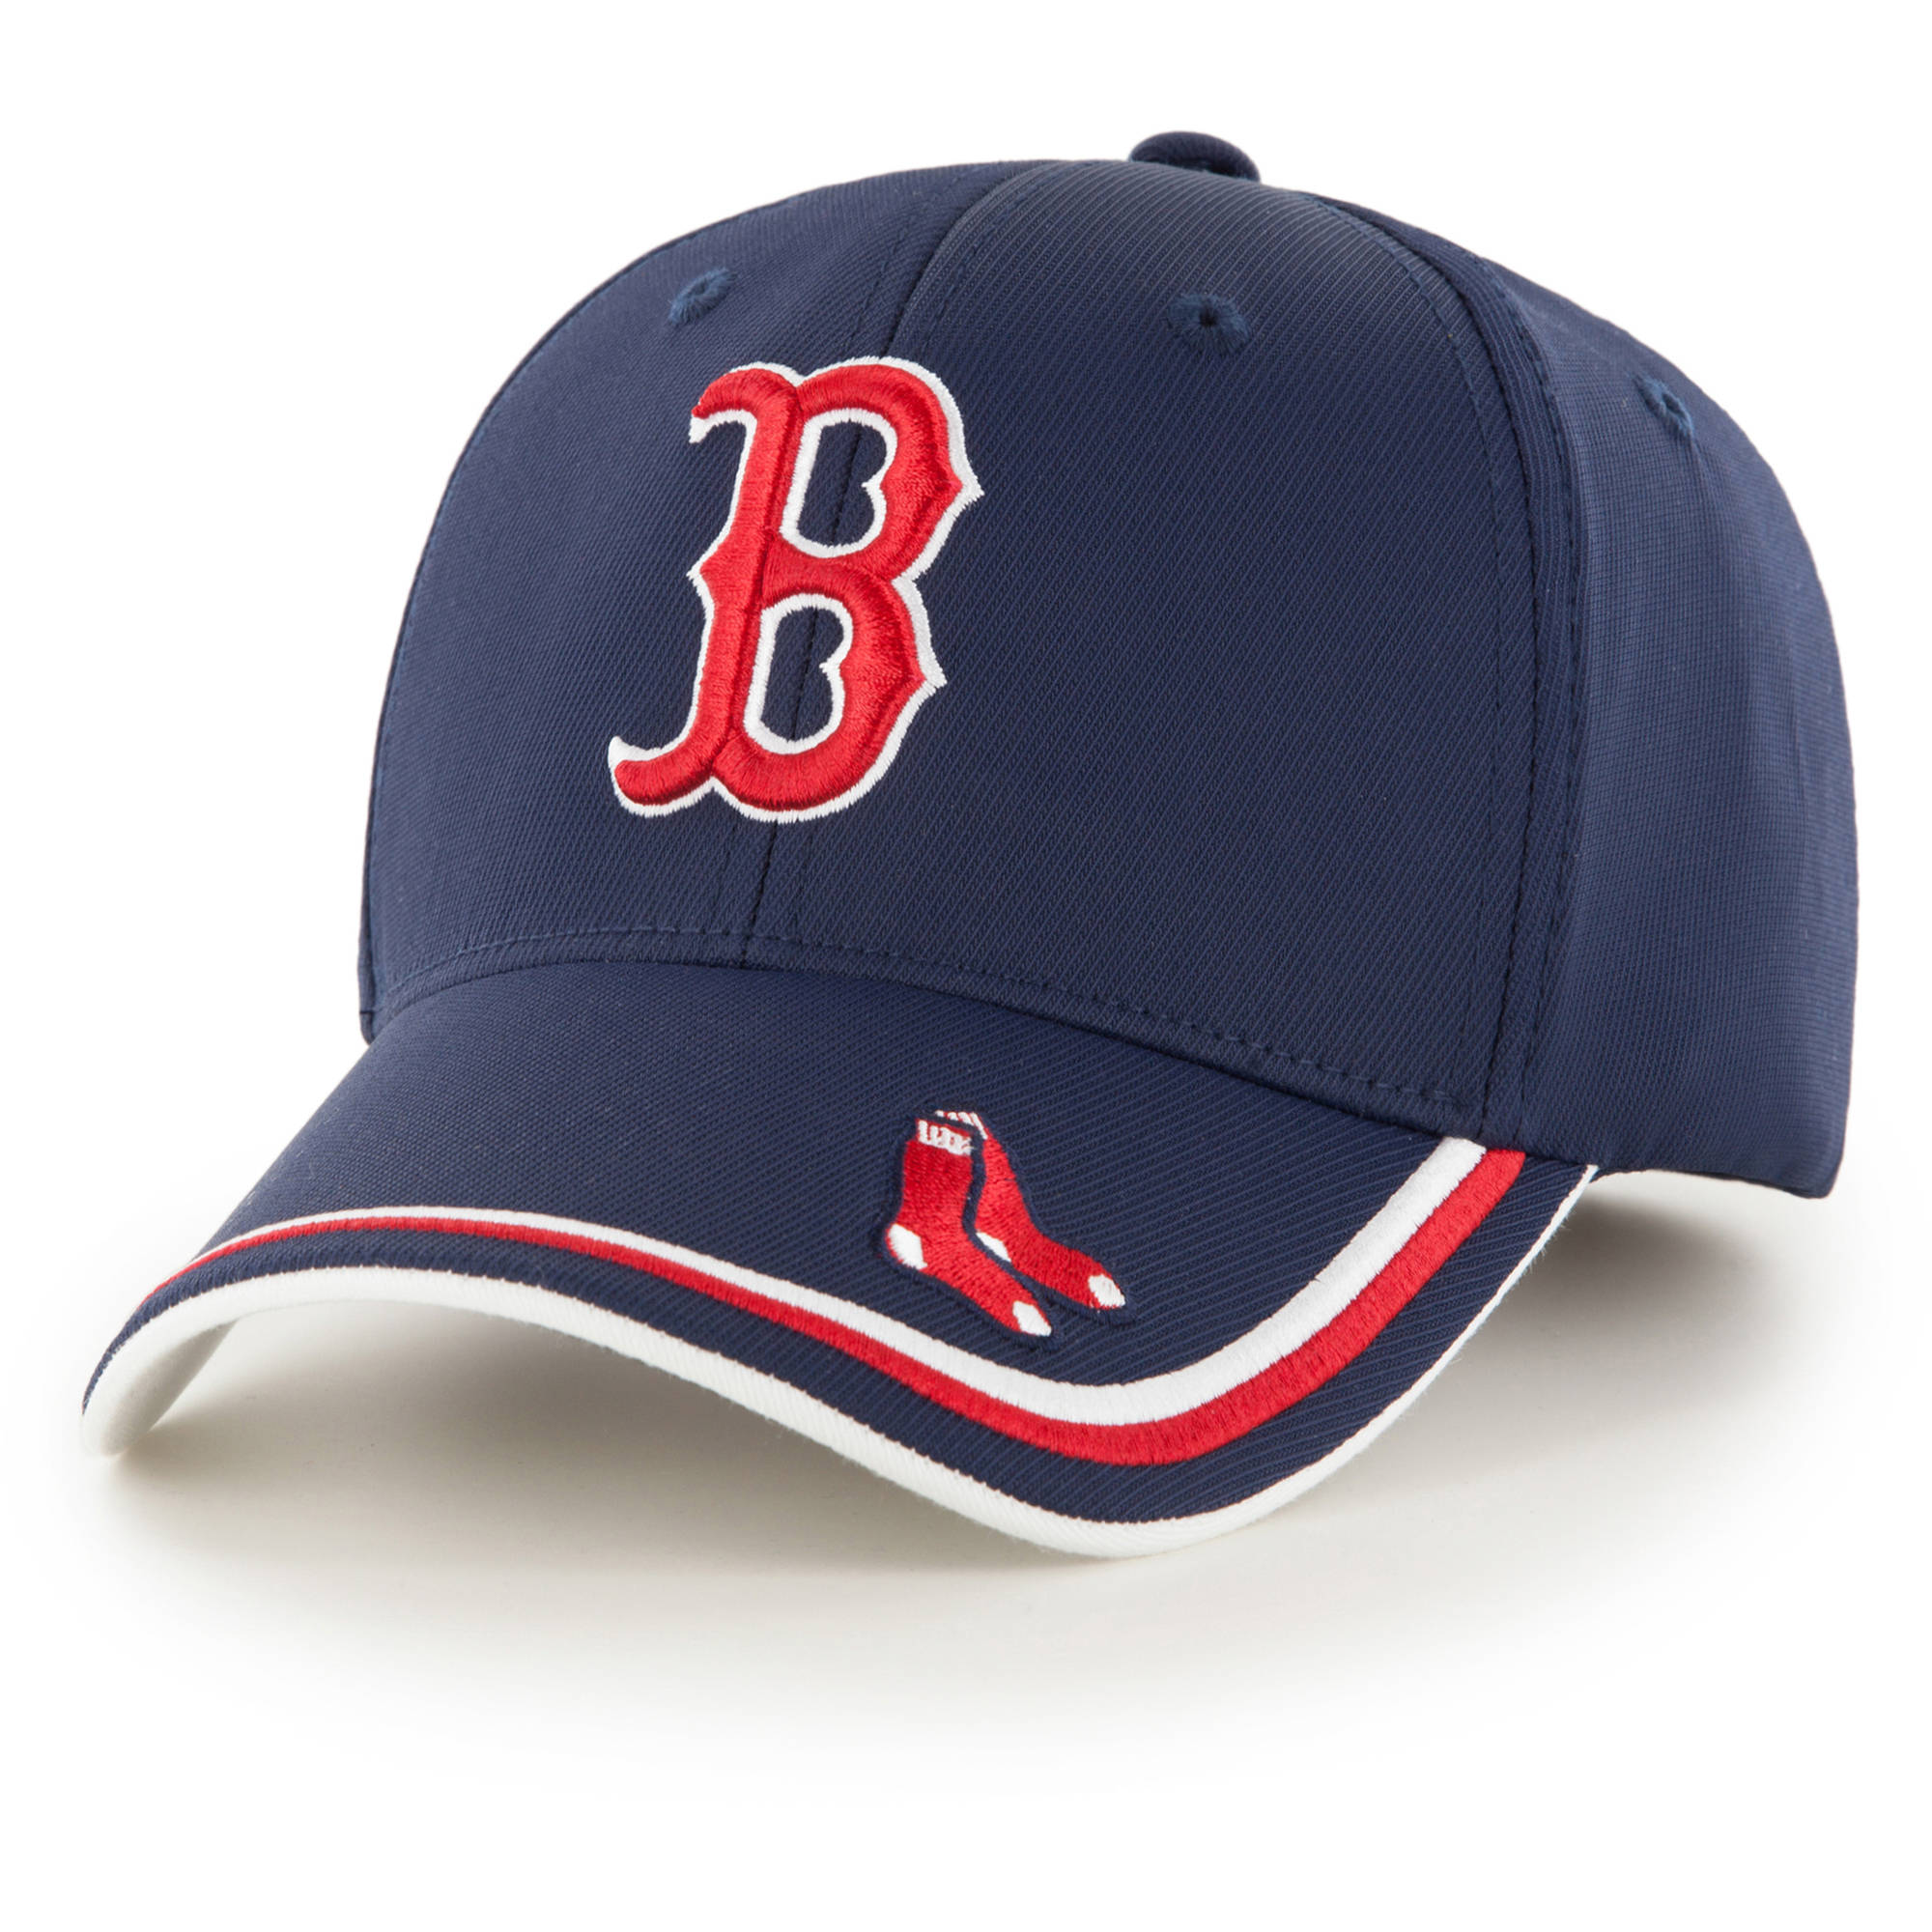 MLB Boston Red Sox Forest Cap / Hat - Fan Favorite